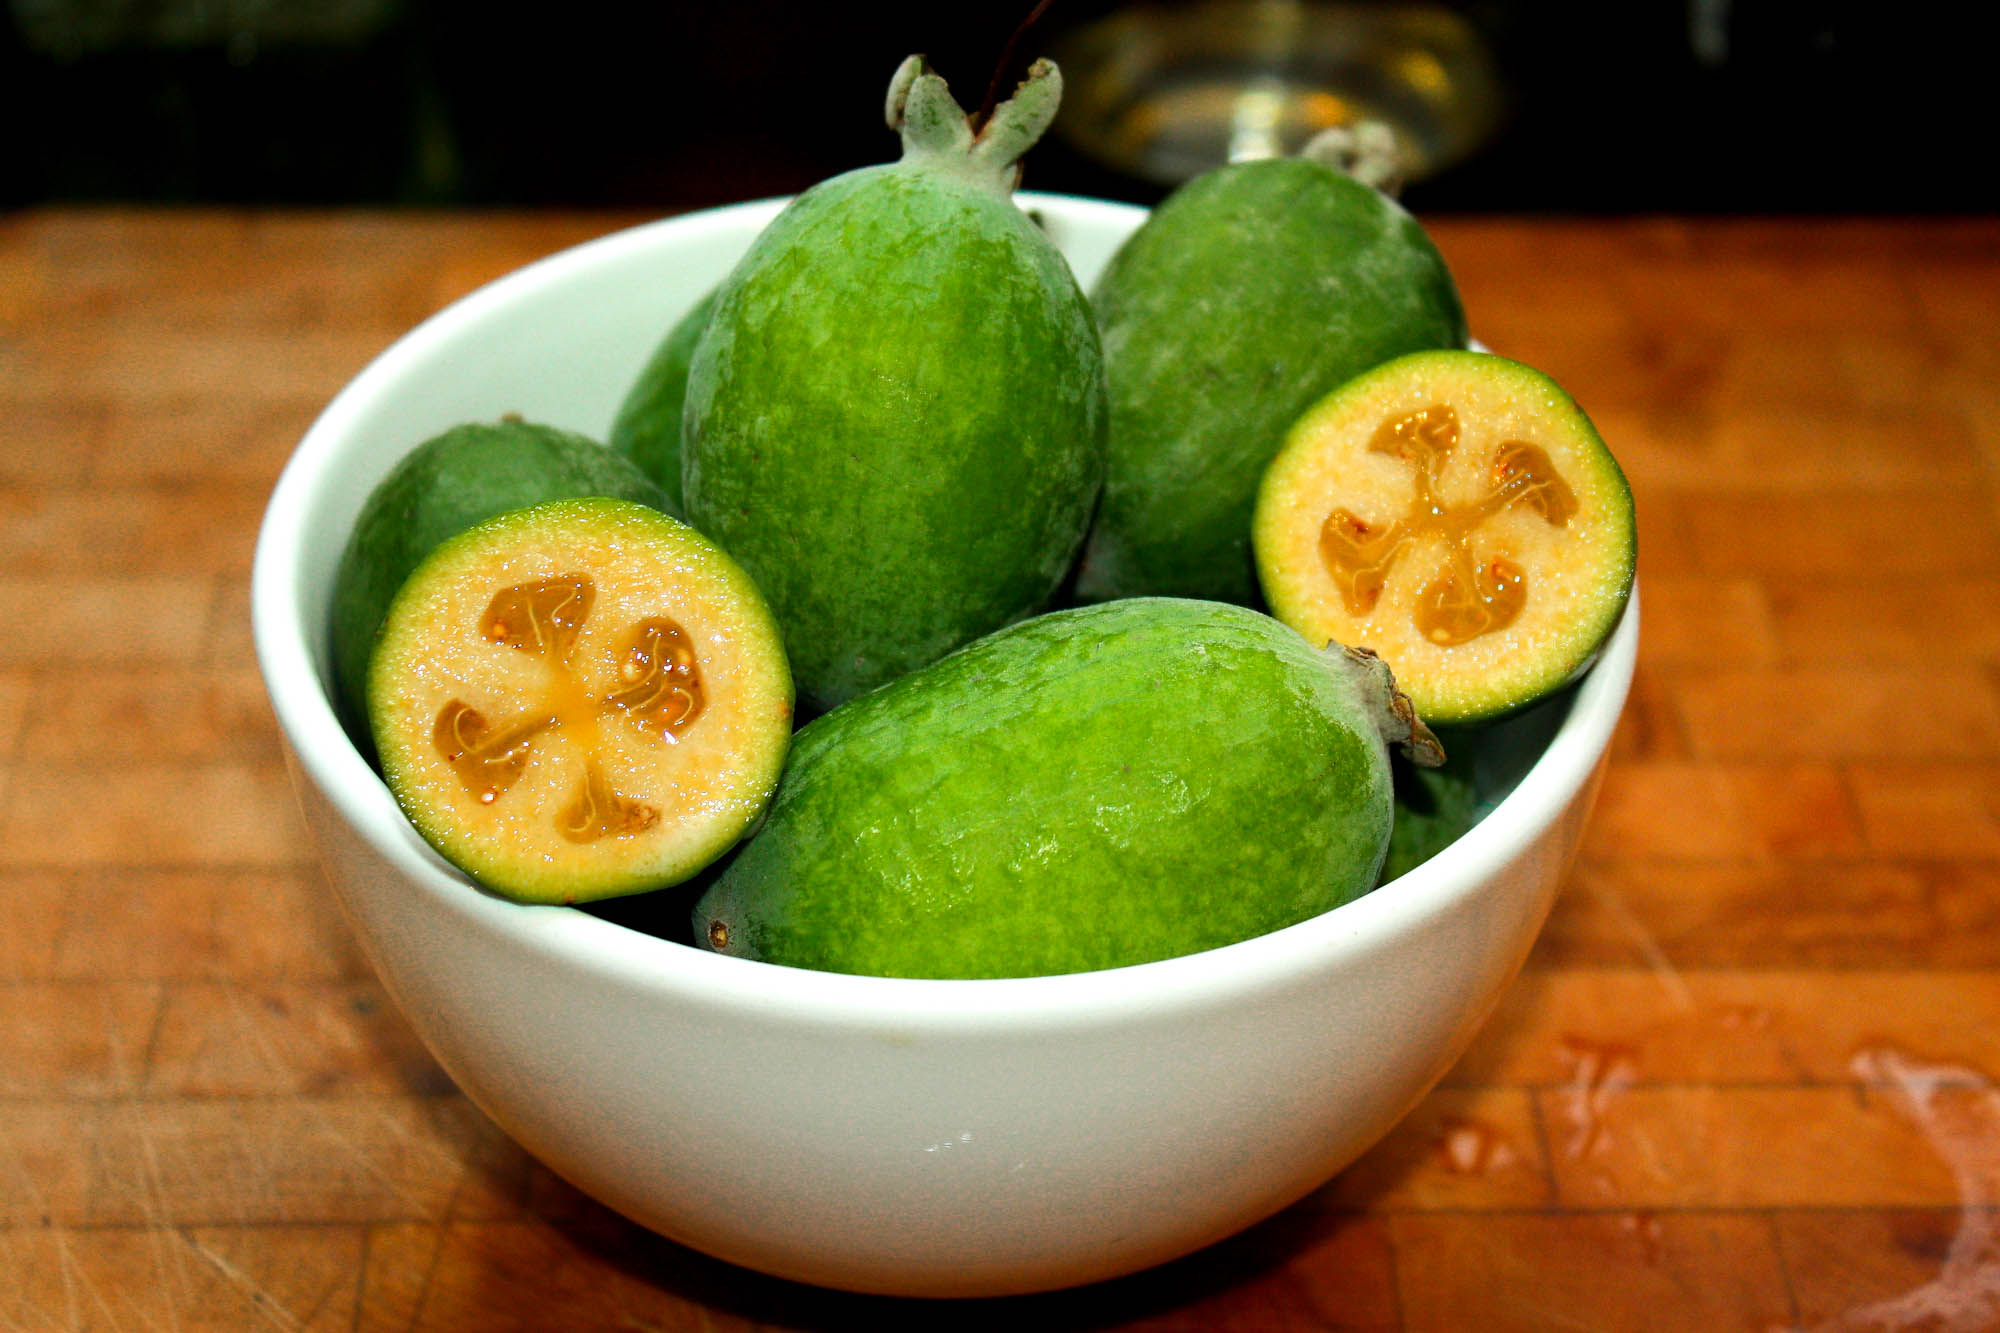 Feijoa aka guavasteen is one of the tastiest exotic fruits from South America.